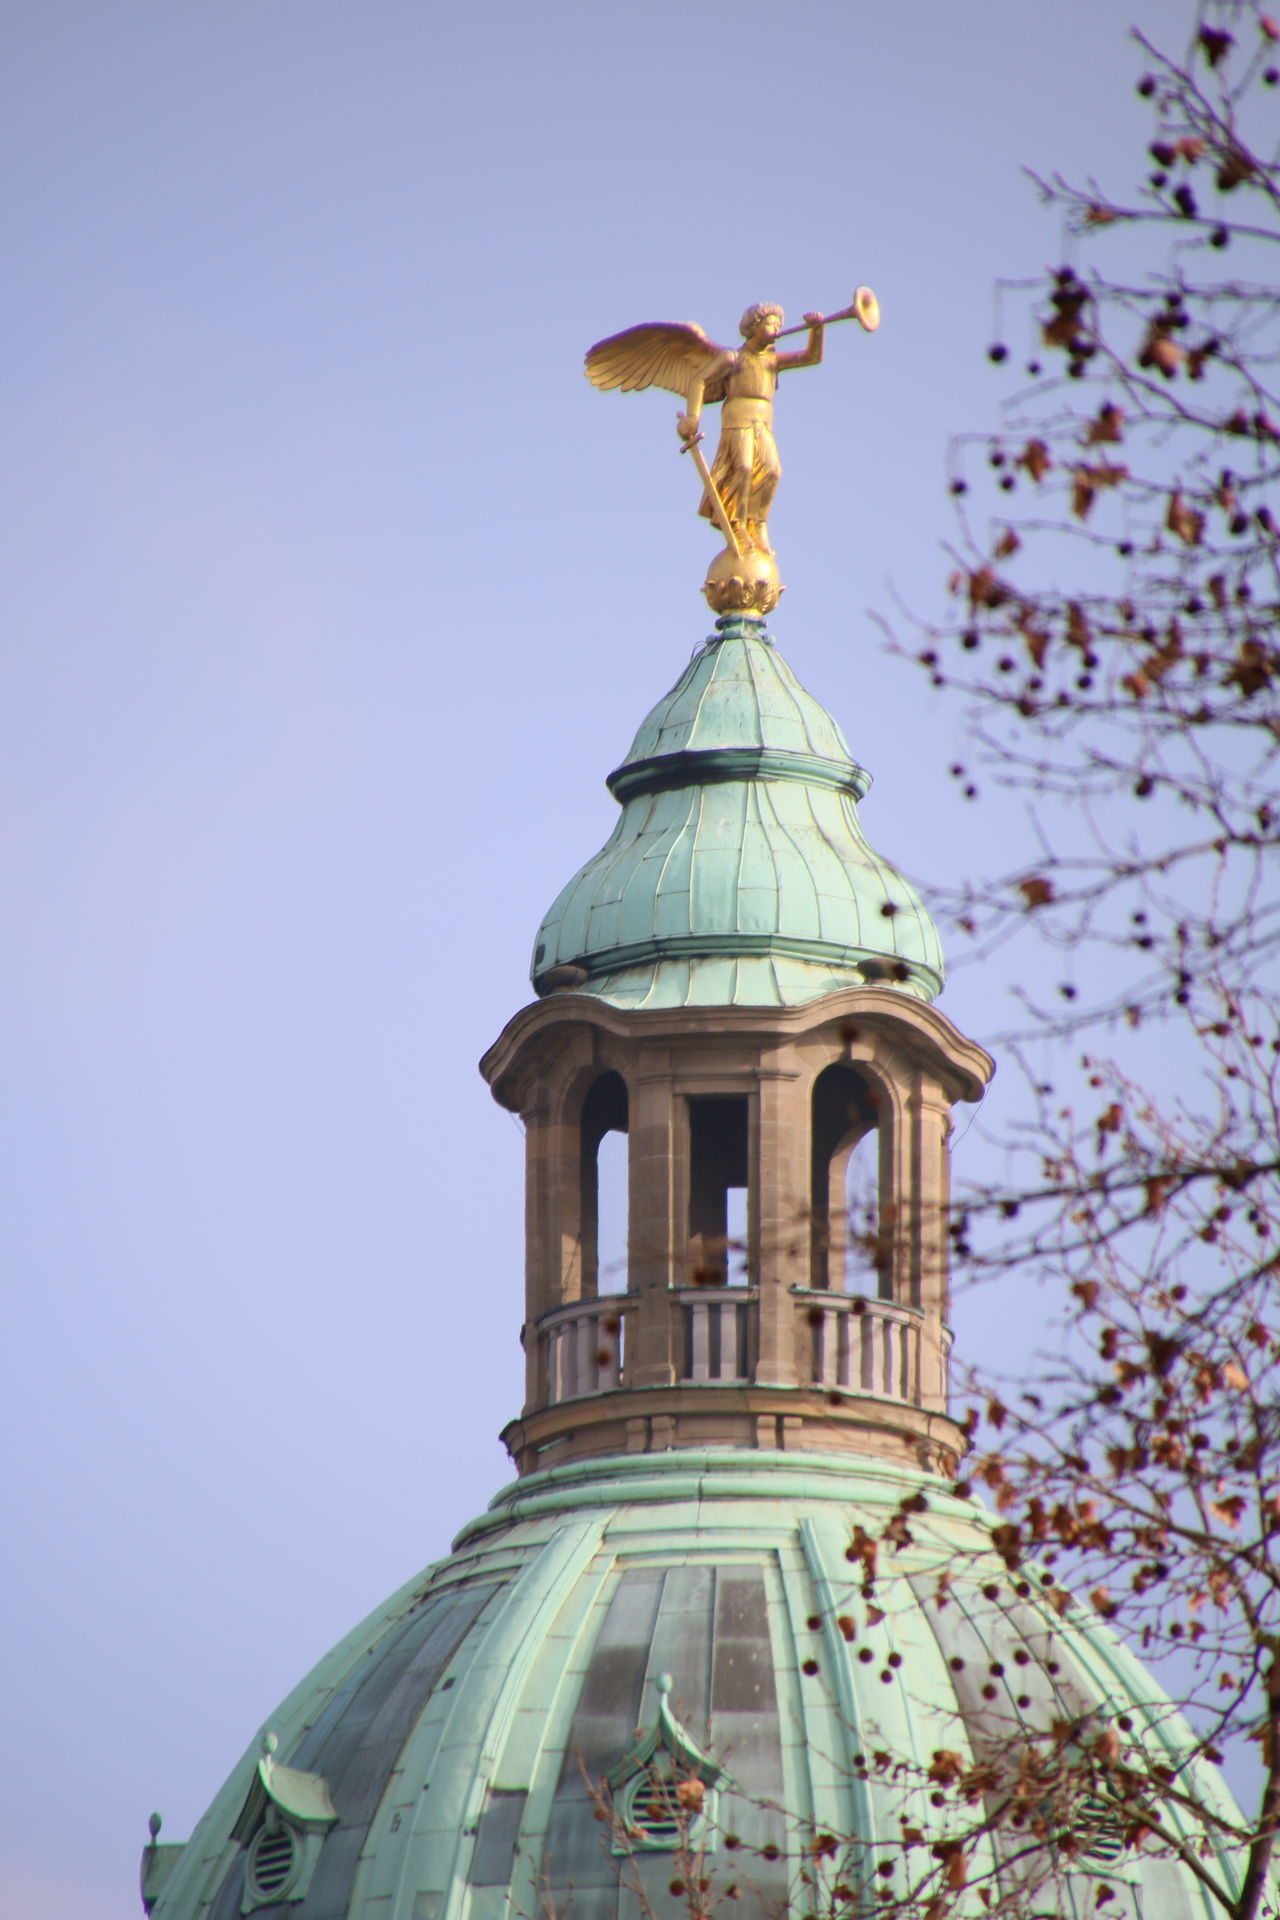 Architecture Dome No People Clear Sky Sky Gold Colored City Outdoors Gold Statue Cityscape Day Mannheim